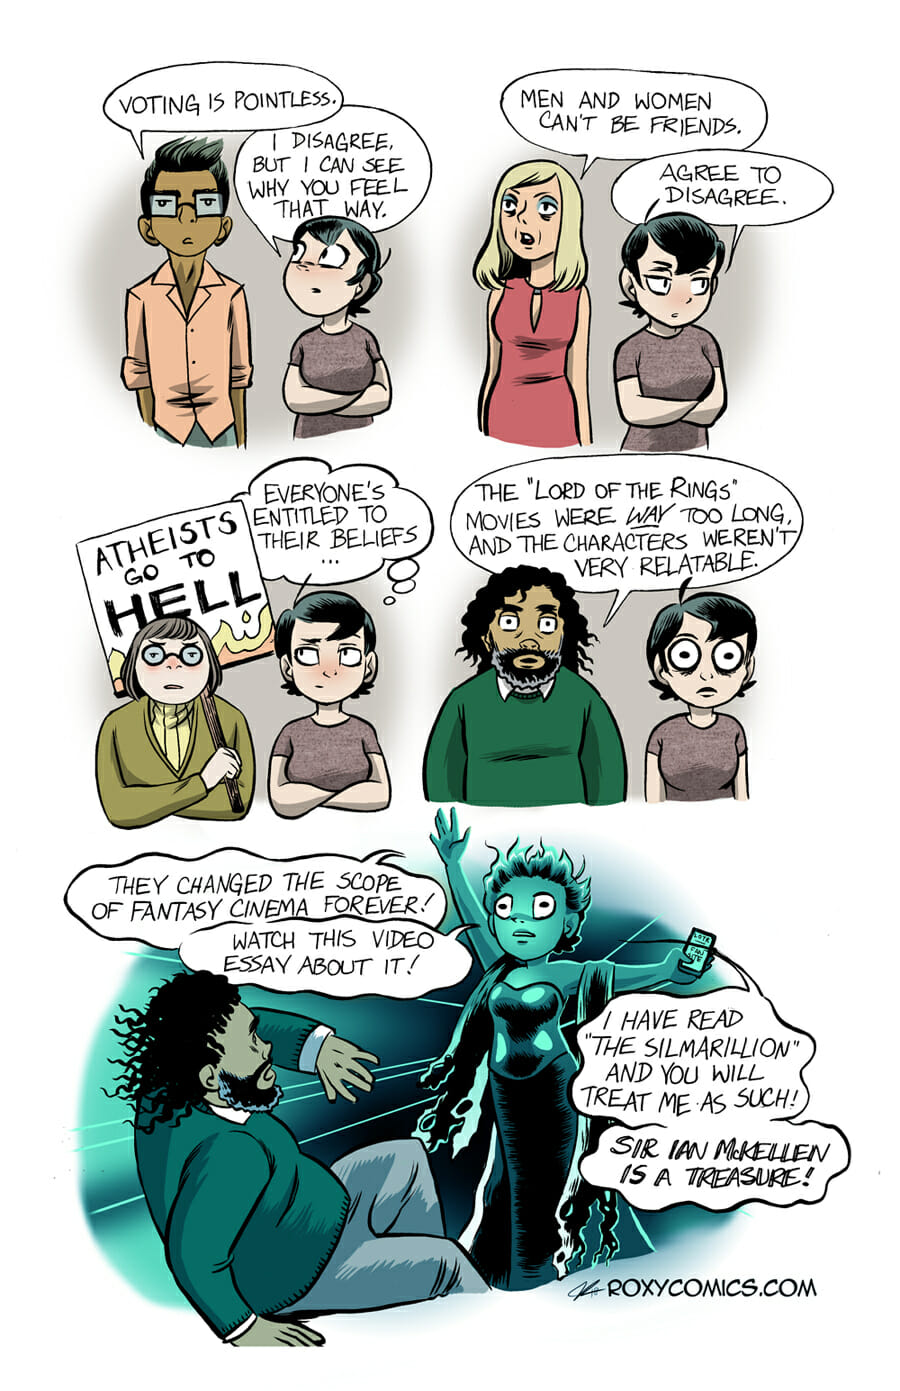 Lord of the Rings comic strip